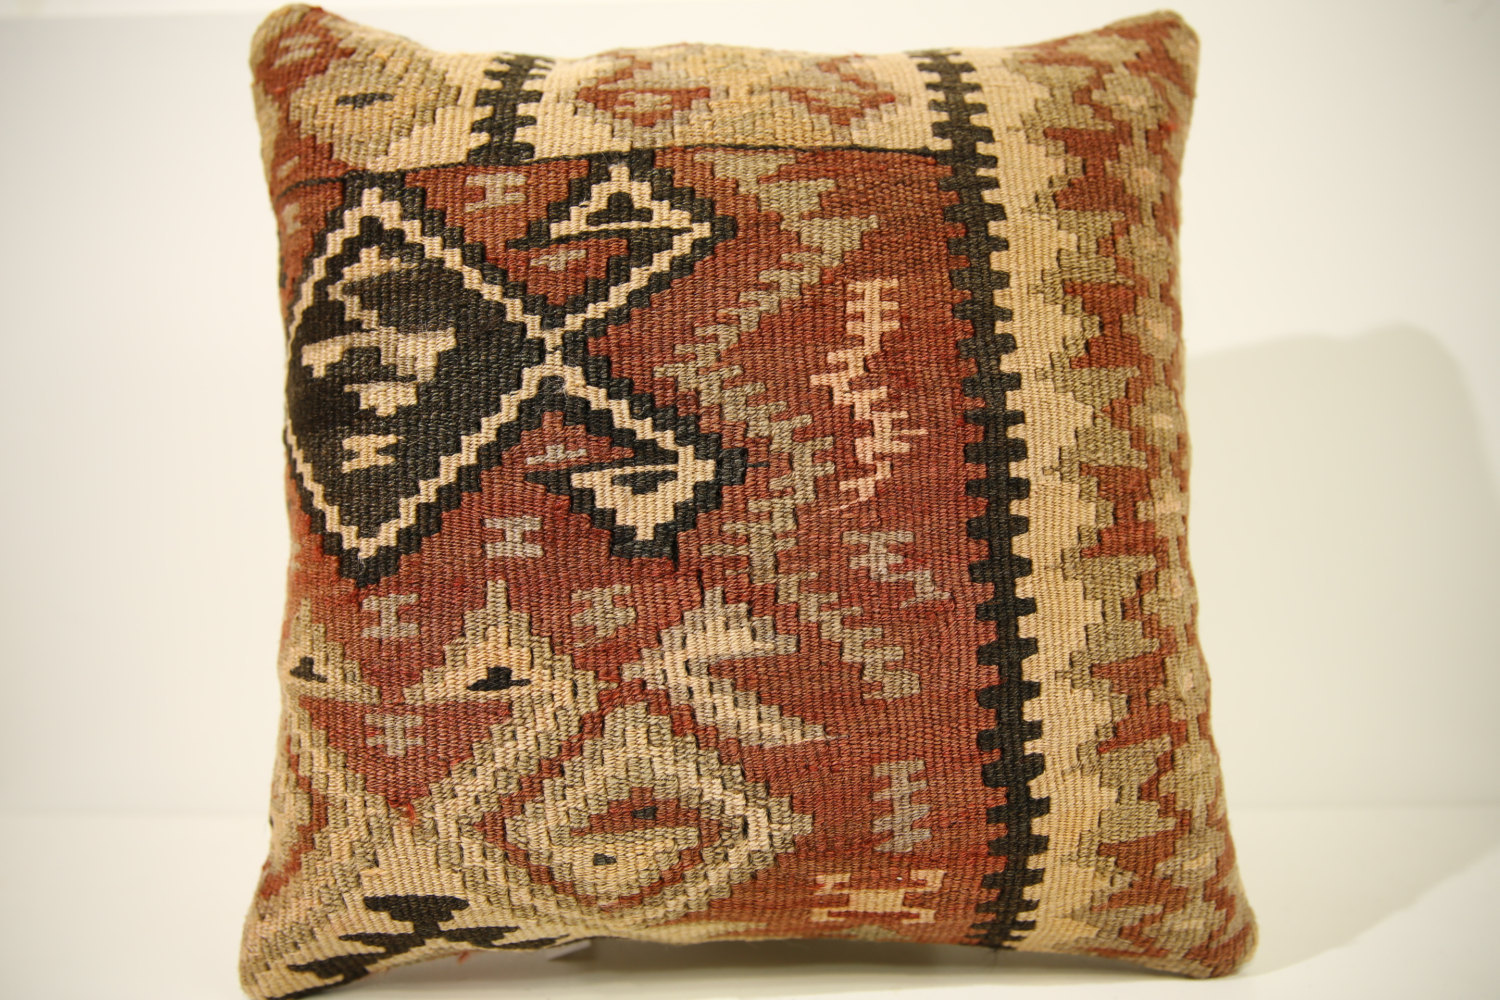 Kilim Pillows | 16x16 | Turkish pillows | 1519 | Accent Pillow,Decorative Pillow